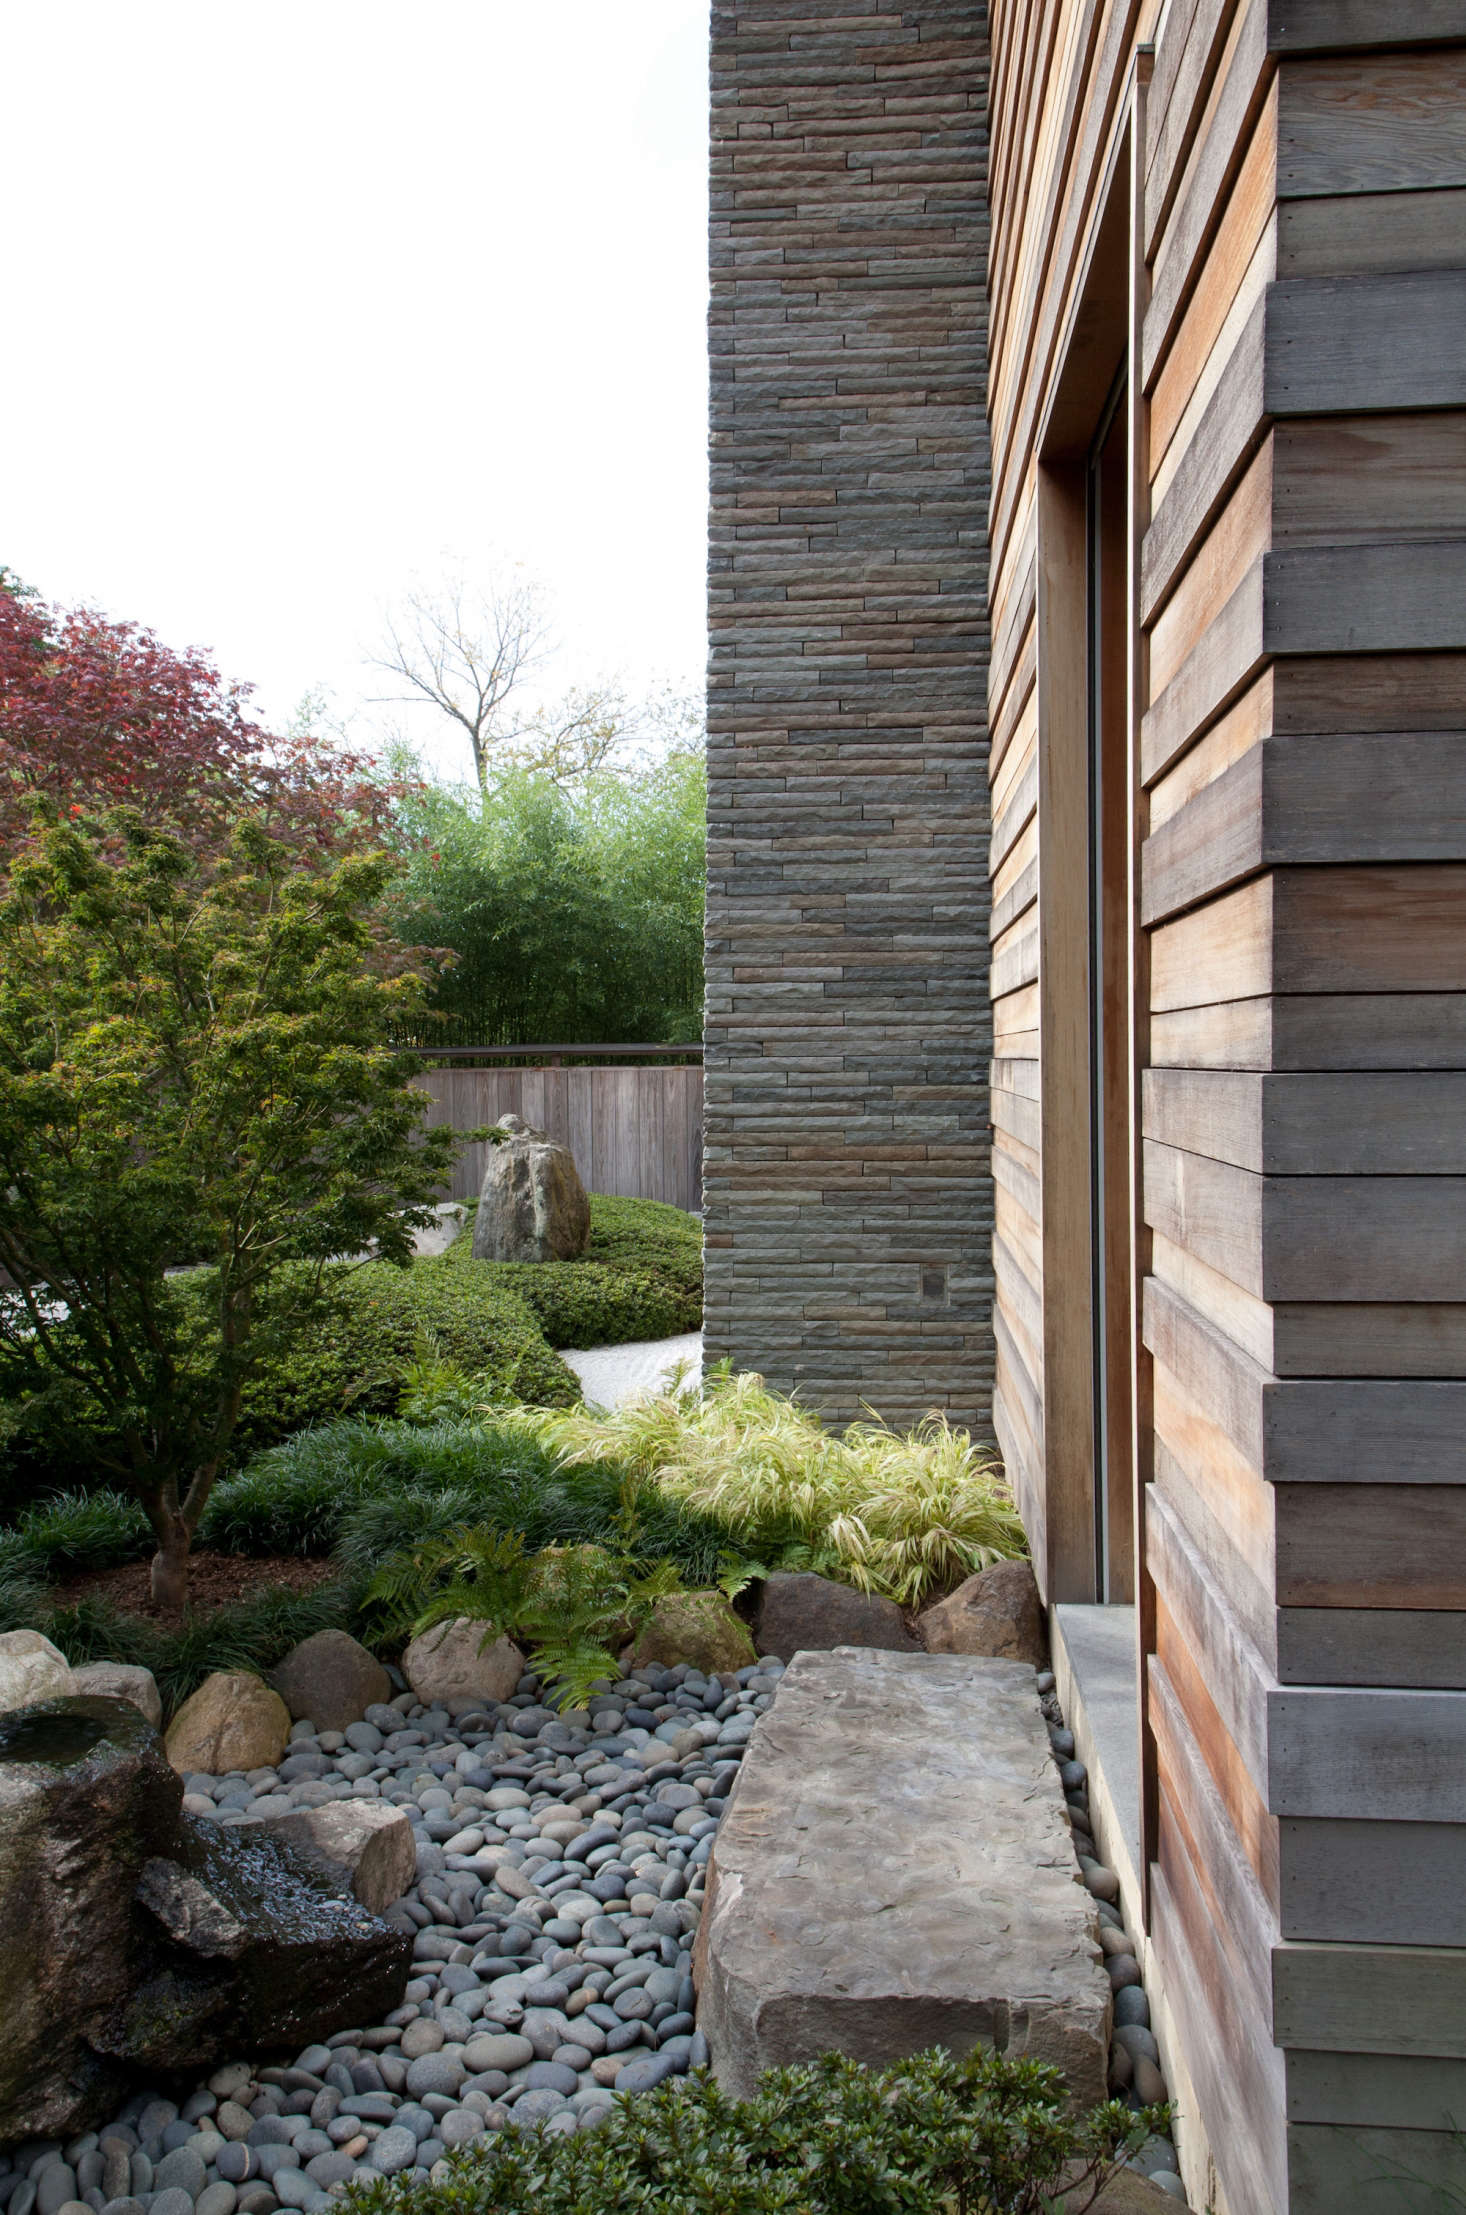 A Japanese-inspired garden features a smooth river rocks at the edge of a stone slab stoop in a Westchester County, NY landscape by designer Marc Peter Keane. Photograph by and courtesy of Don Freeman. For more, see Designer Visit: A Garden Inspired by Japan.